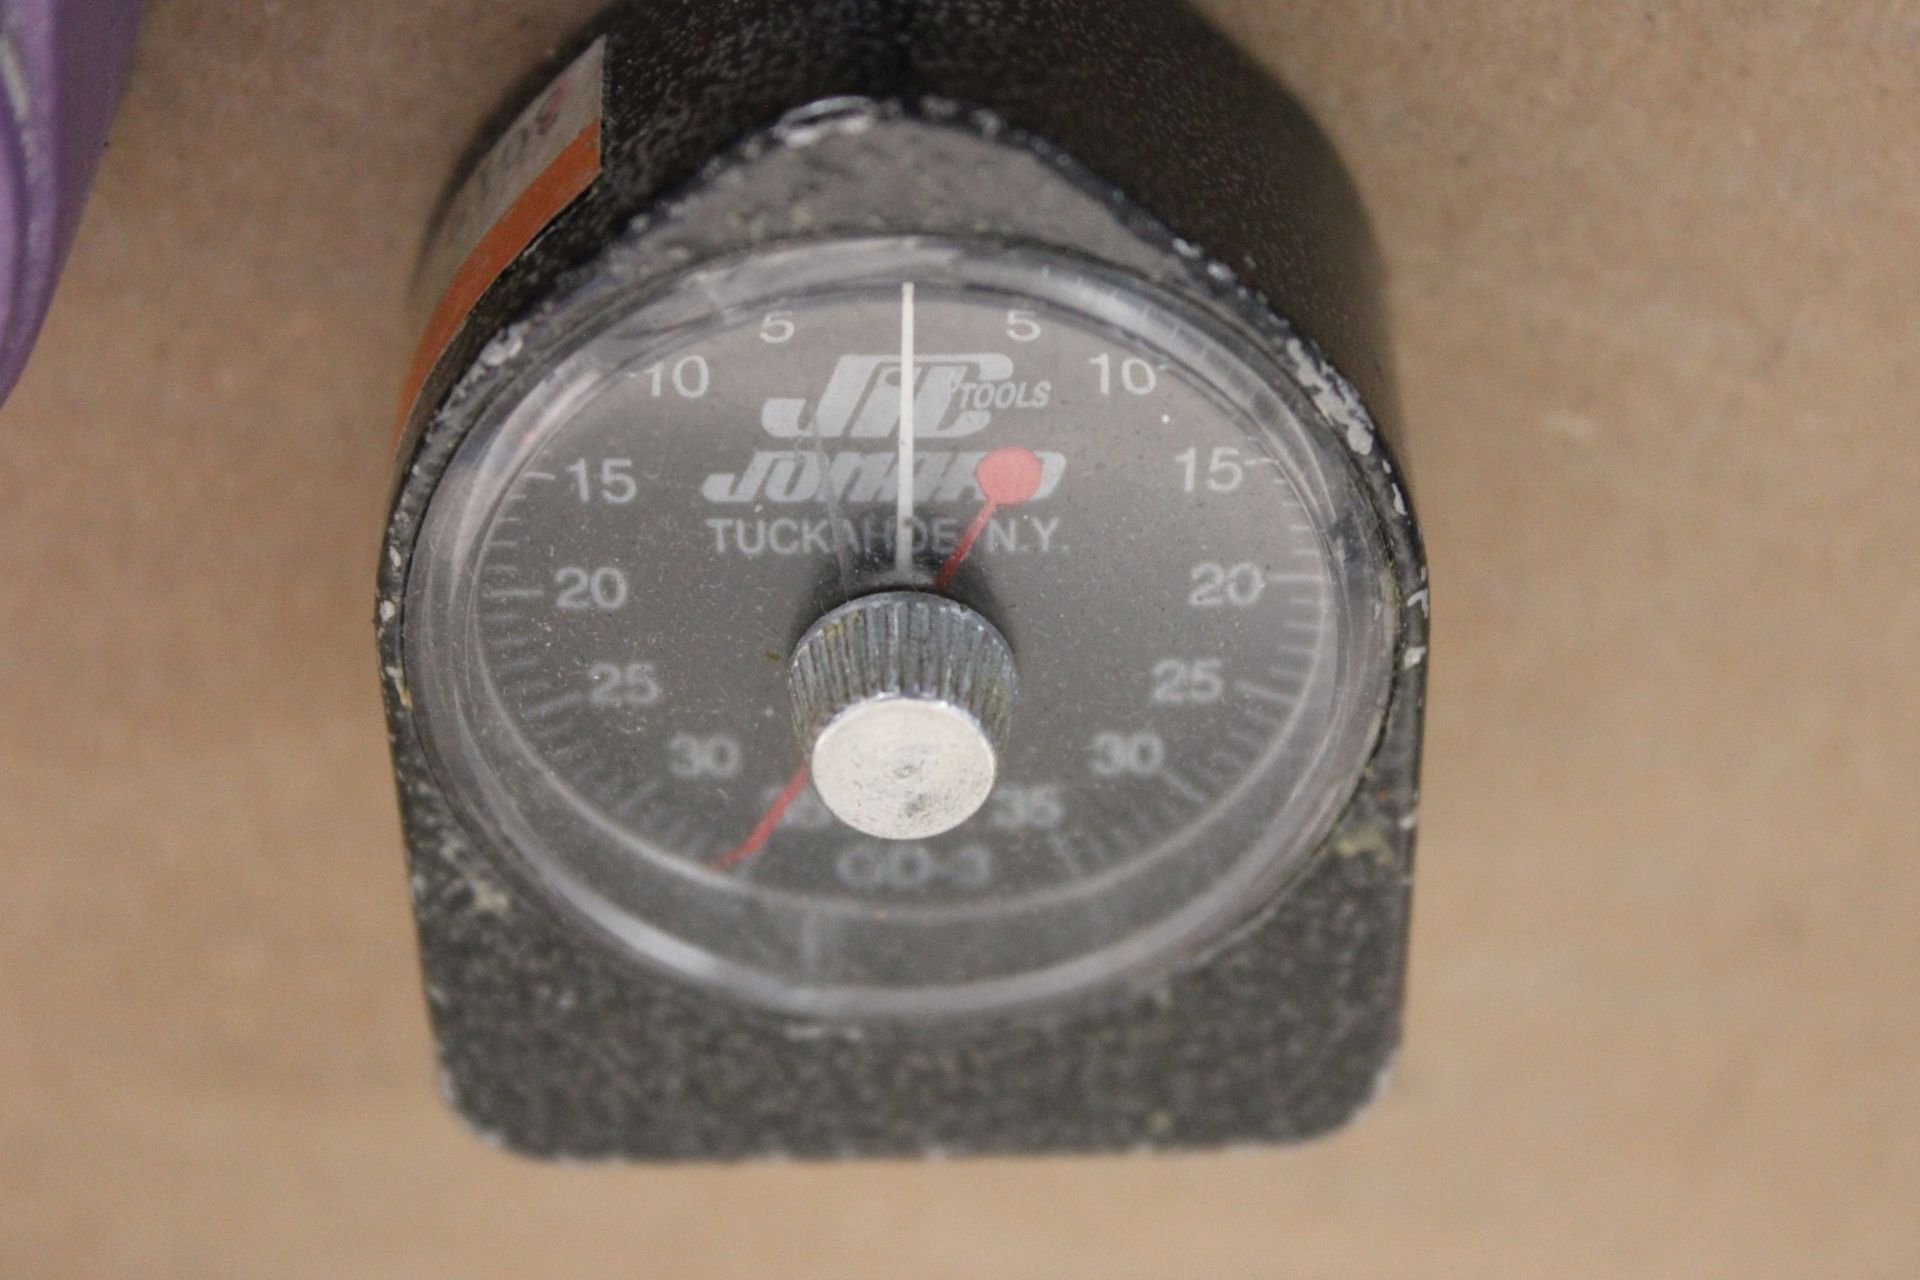 LOT OF 5 TENSIONS GAUGES - Image 3 of 3